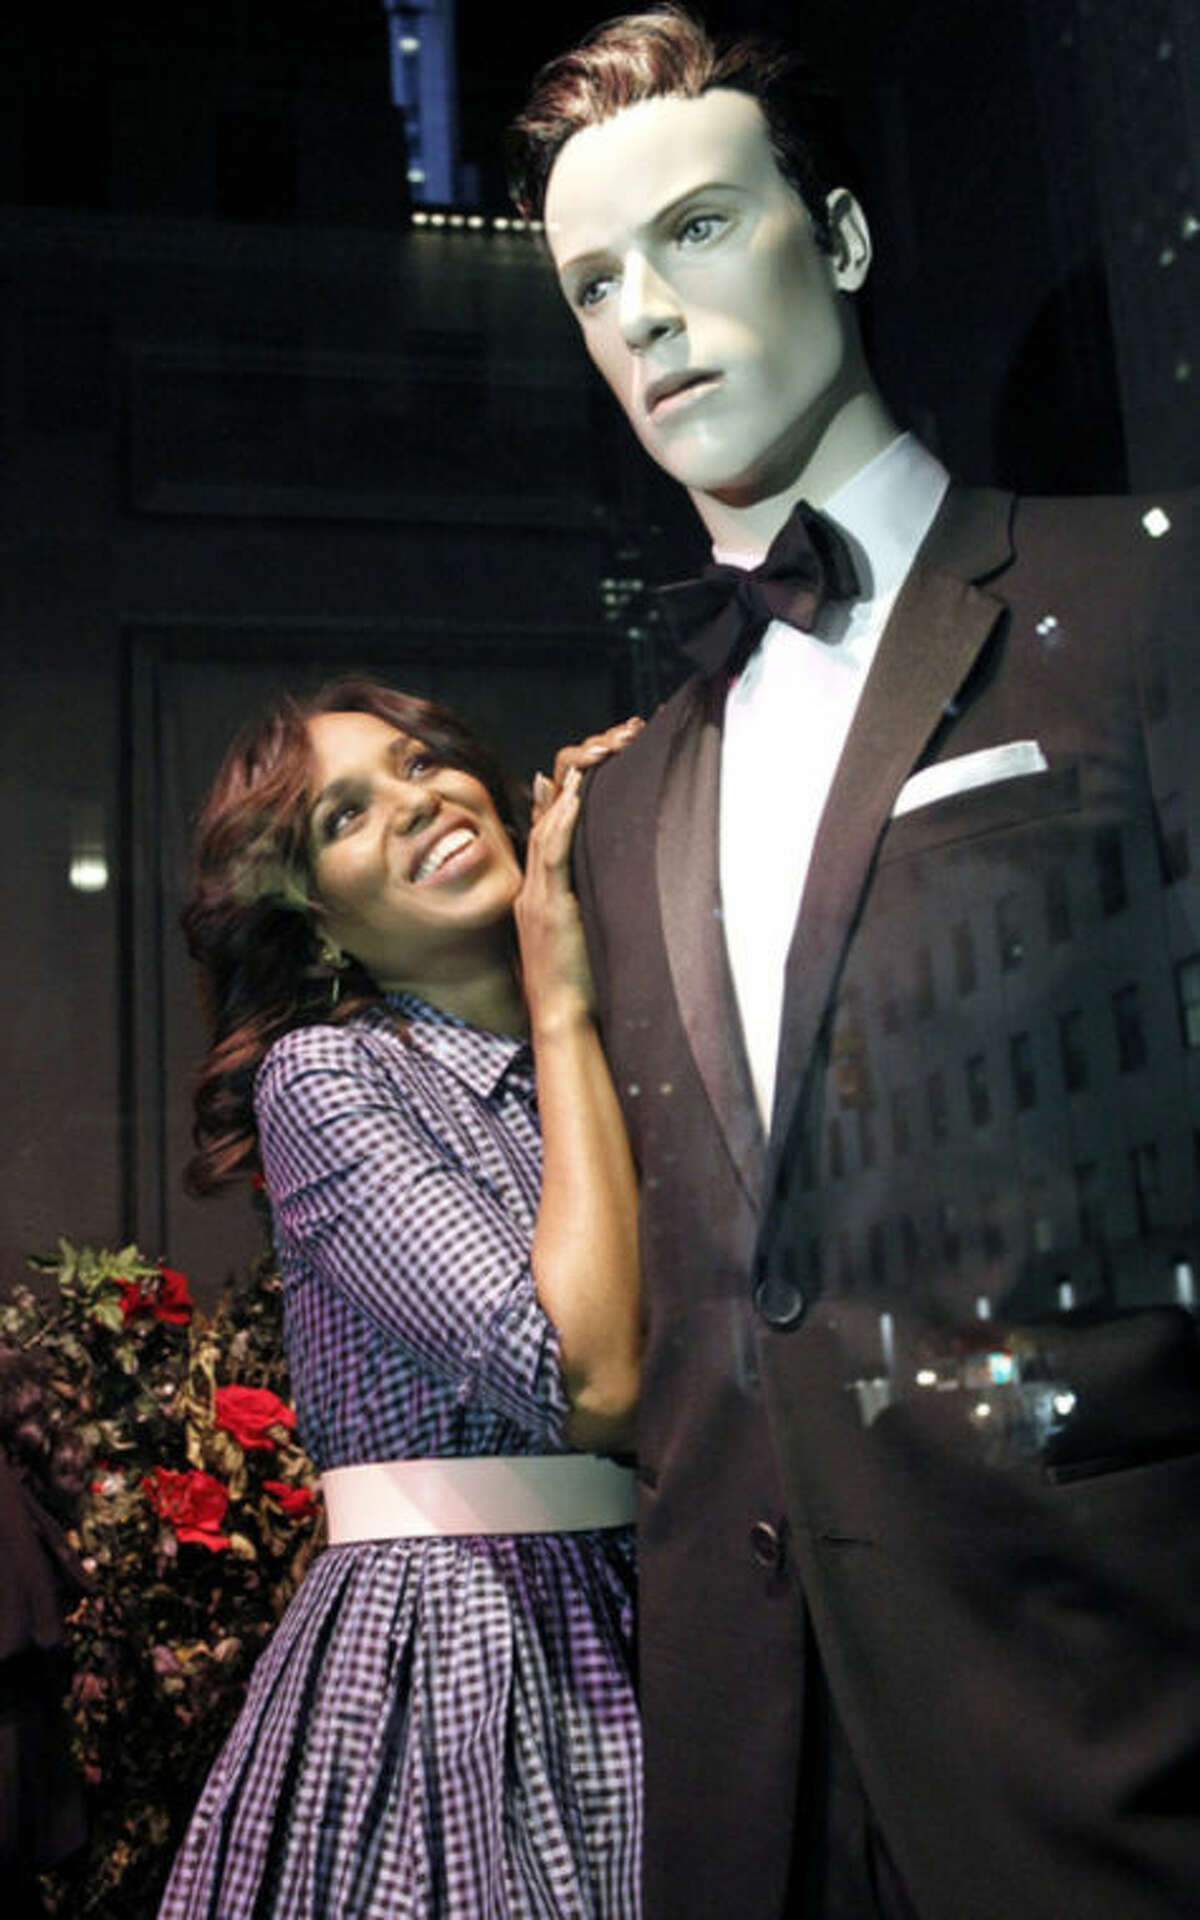 """AP Photo/ABC, Lou Rocco This photo shows actress Kerry Washington posing next to a mannequin in a tuxedo, part of an installation honoring the TV series """"Scandal"""" at Saks 5th Avenue in New York."""